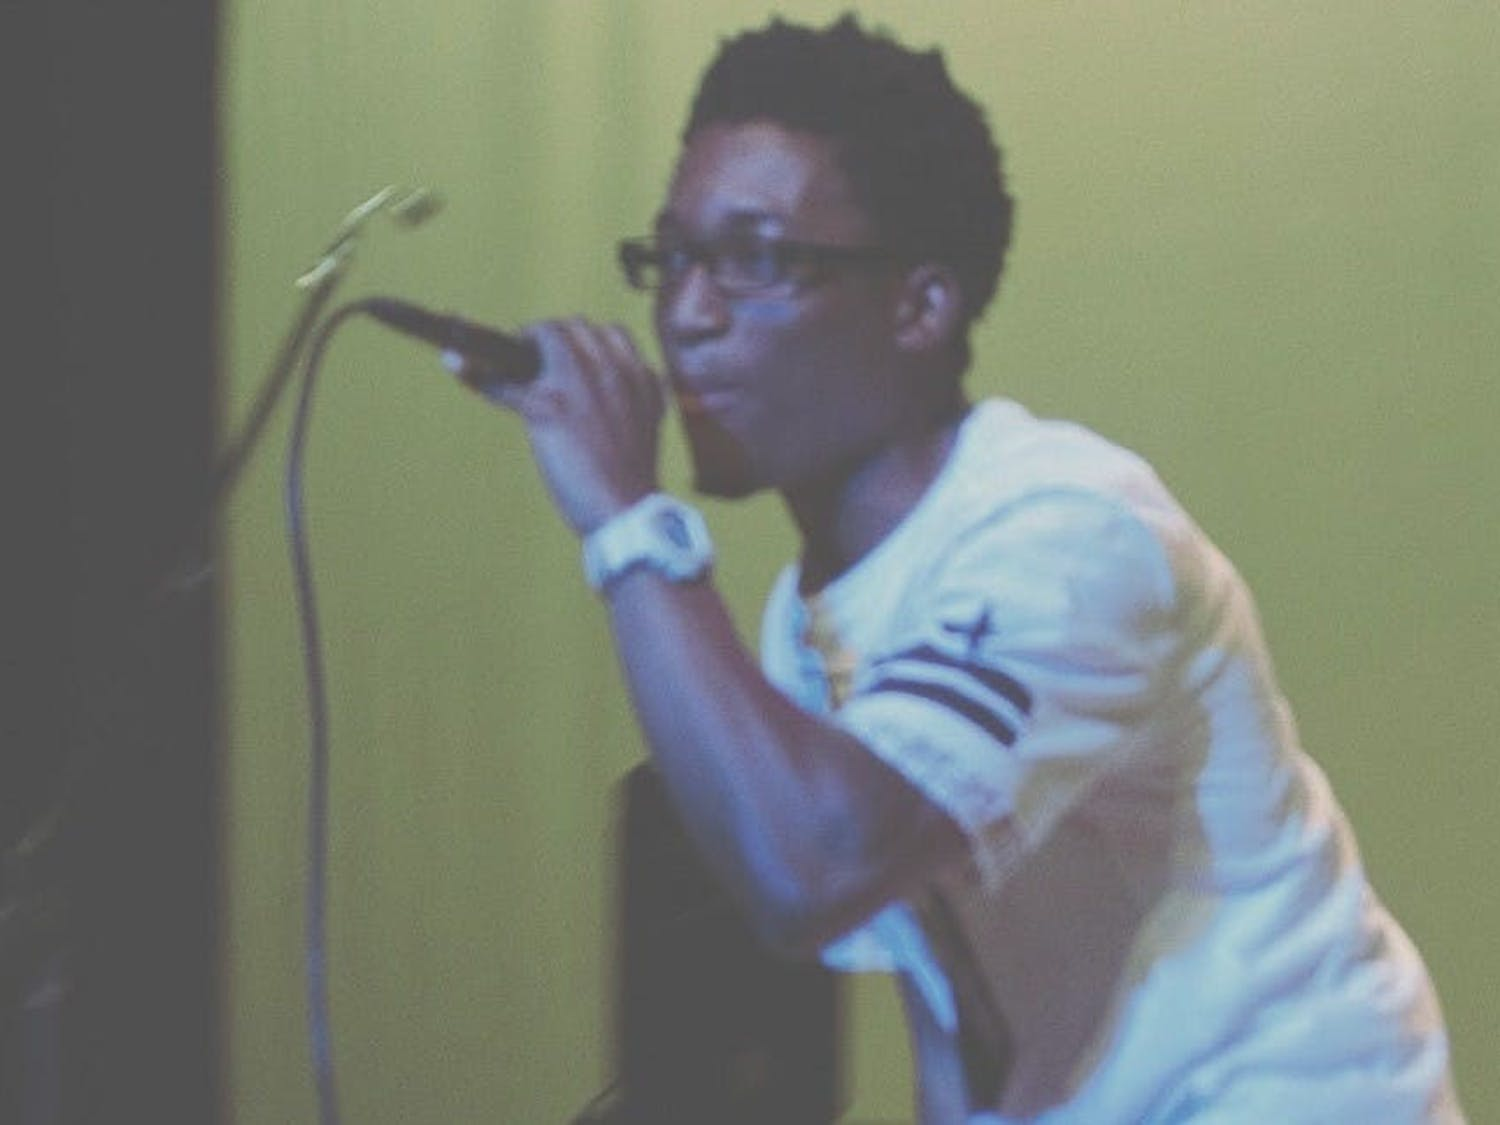 Student rapper Marc Mighty performs at a show.